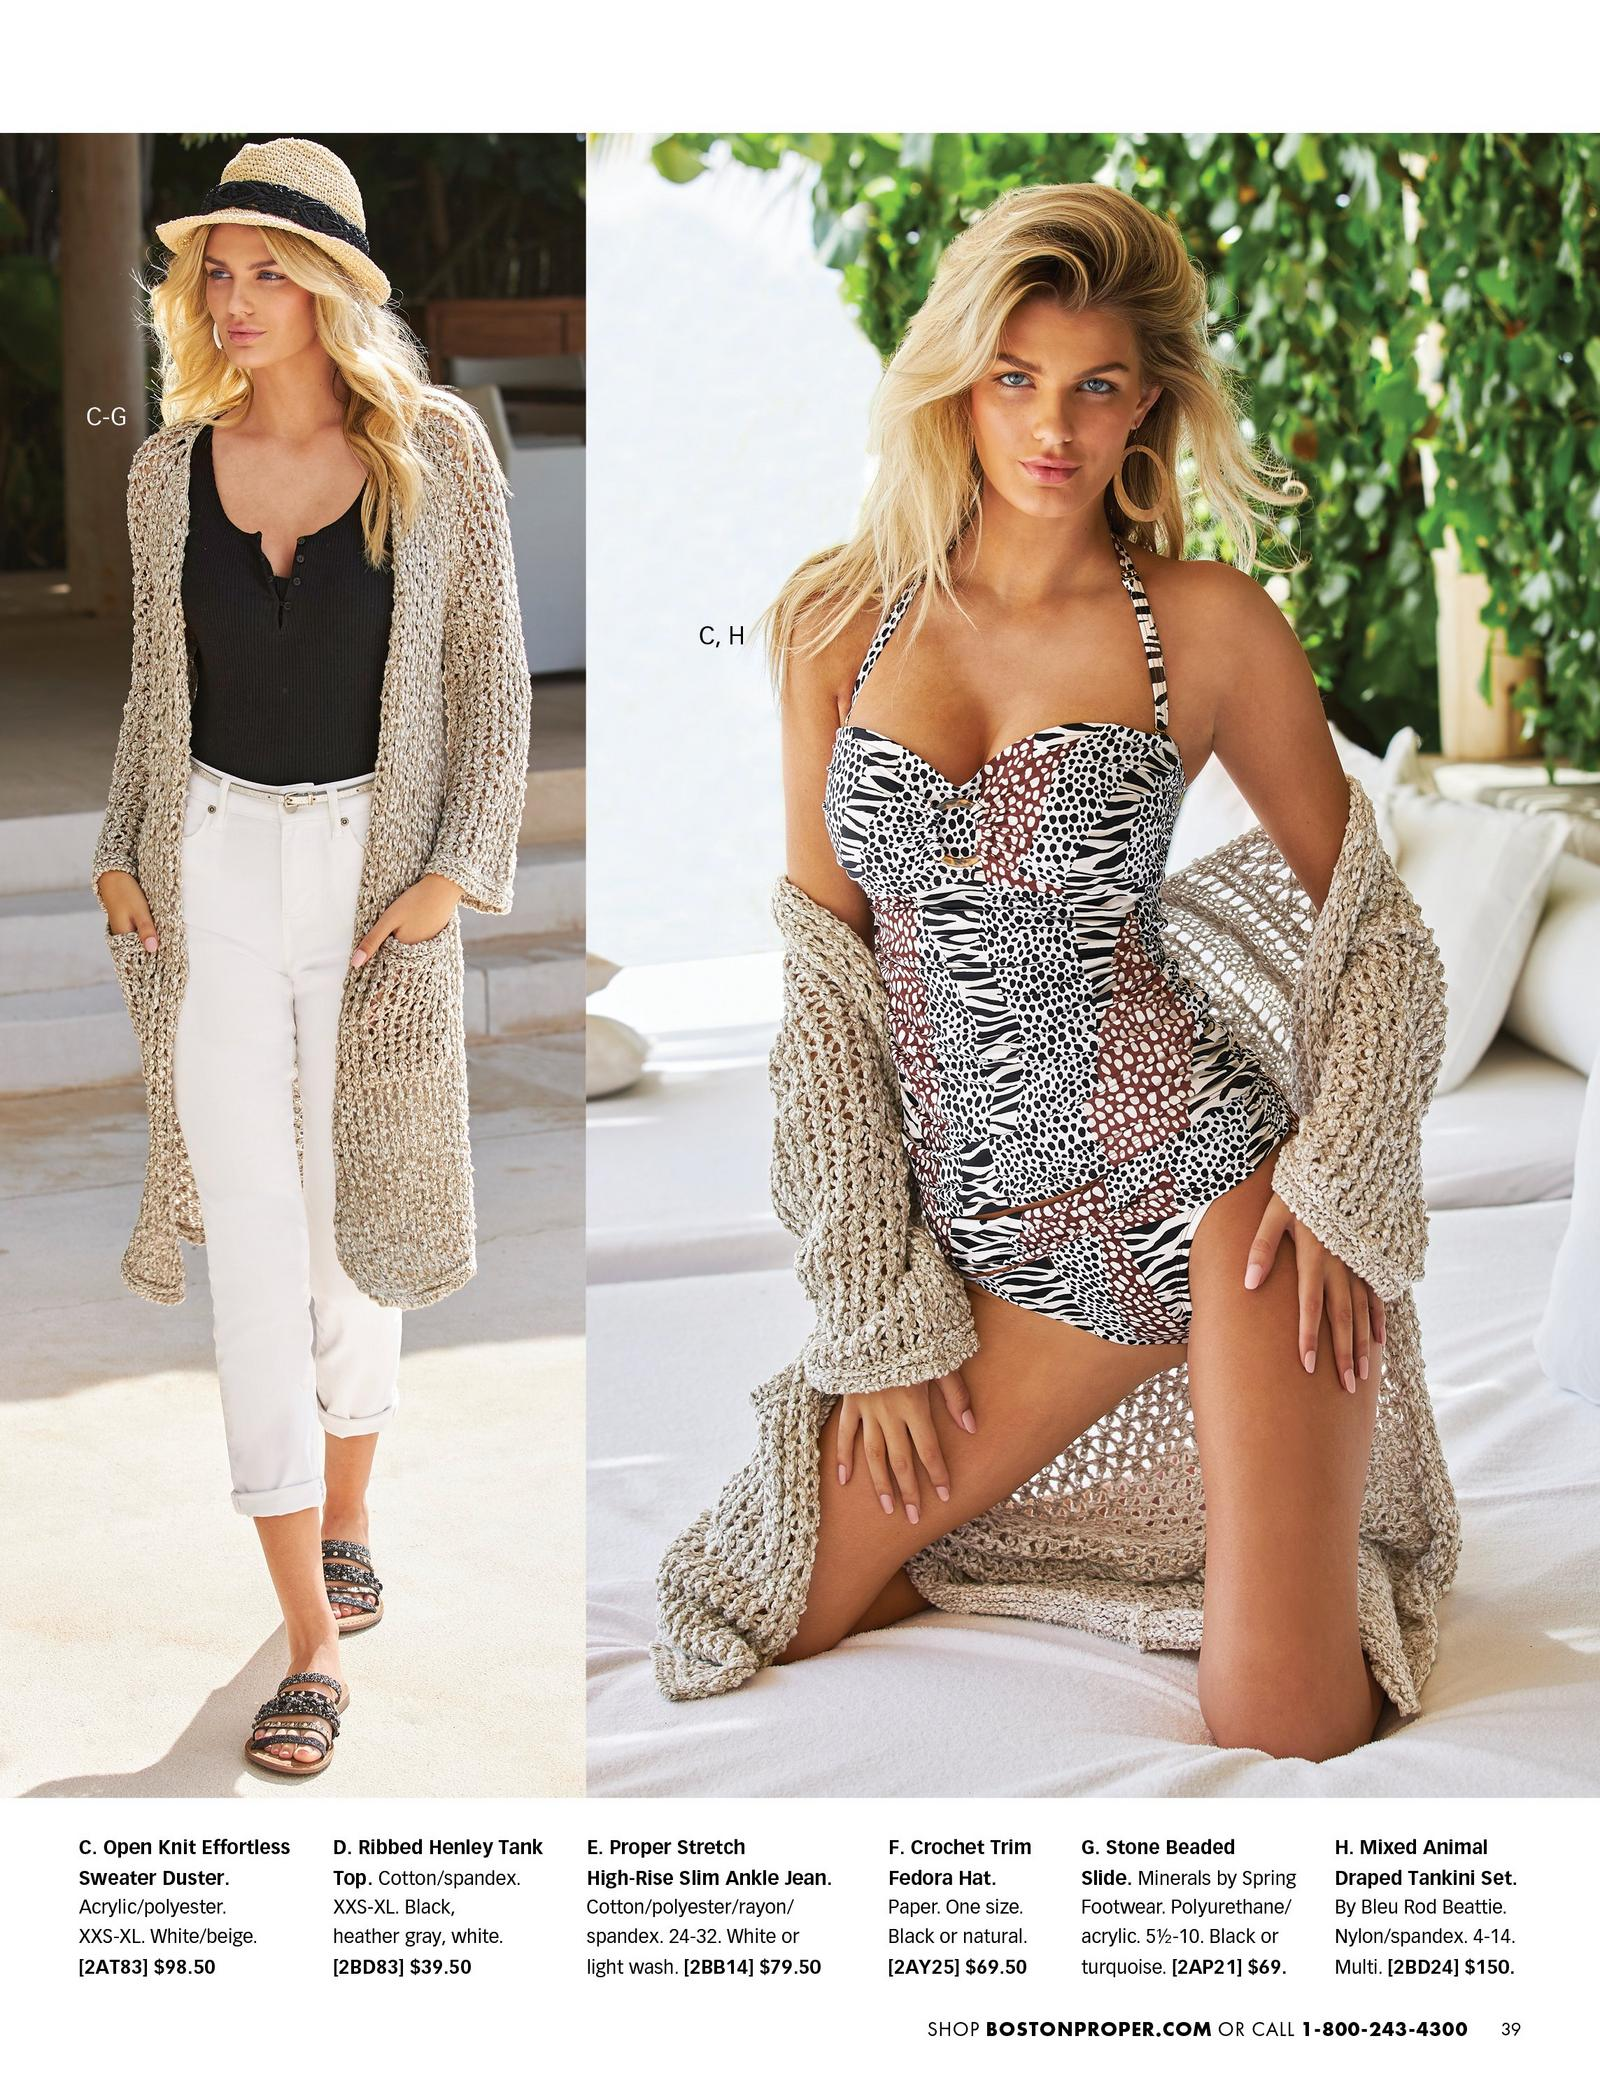 left model wearing an open-knit beige sweater duster, black henley tank top, white jeans, straw hat, and black and gold strappy sandals. right model wearing a mixed animal print tankini set and an open knit sweater duster in beige.